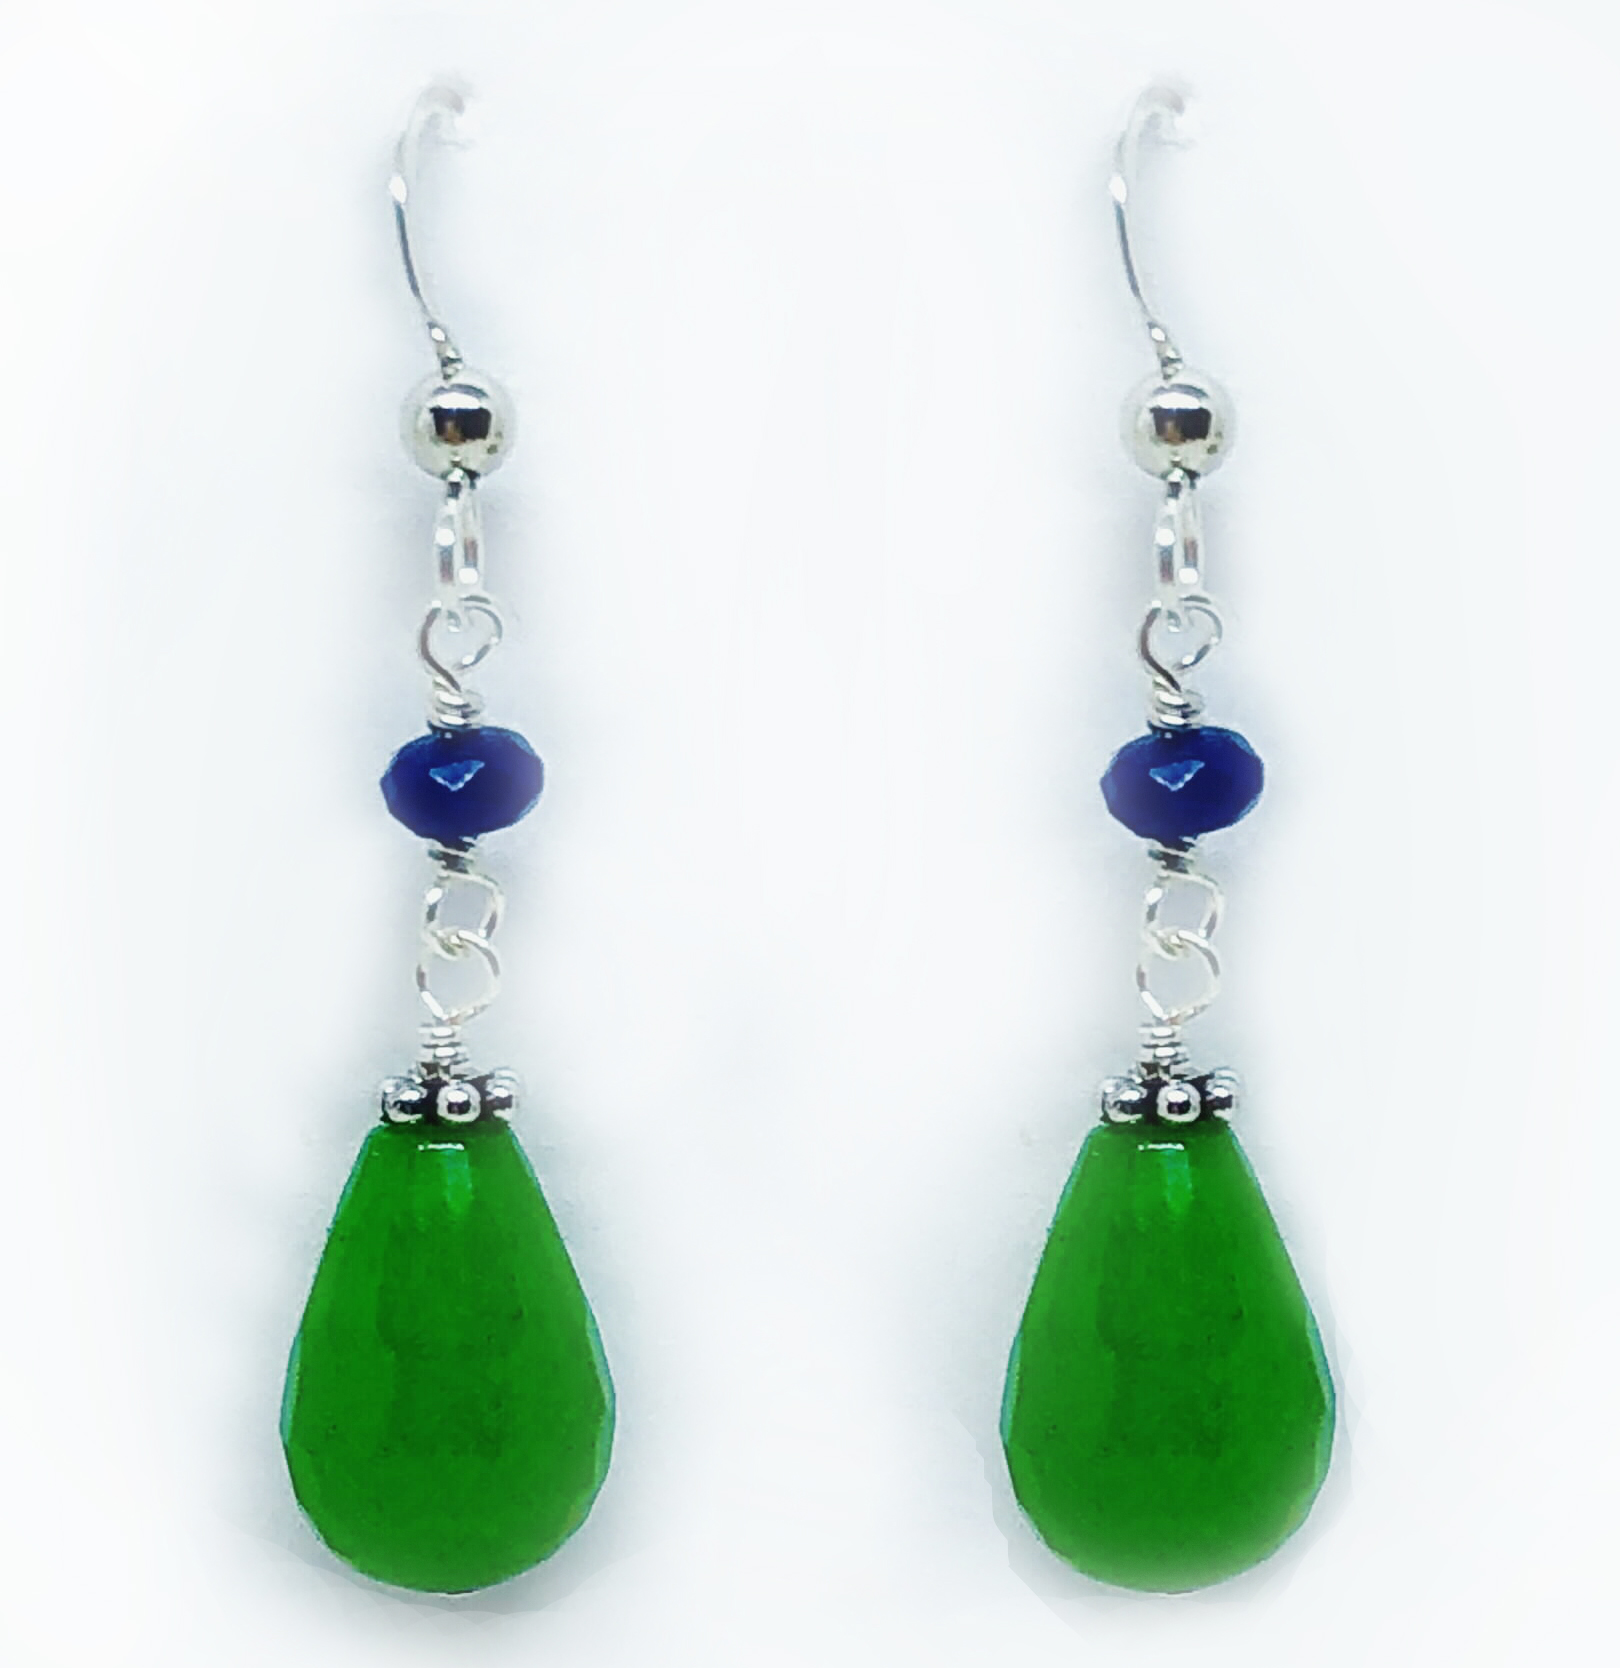 Silver Drop Earrings With Blue Beads